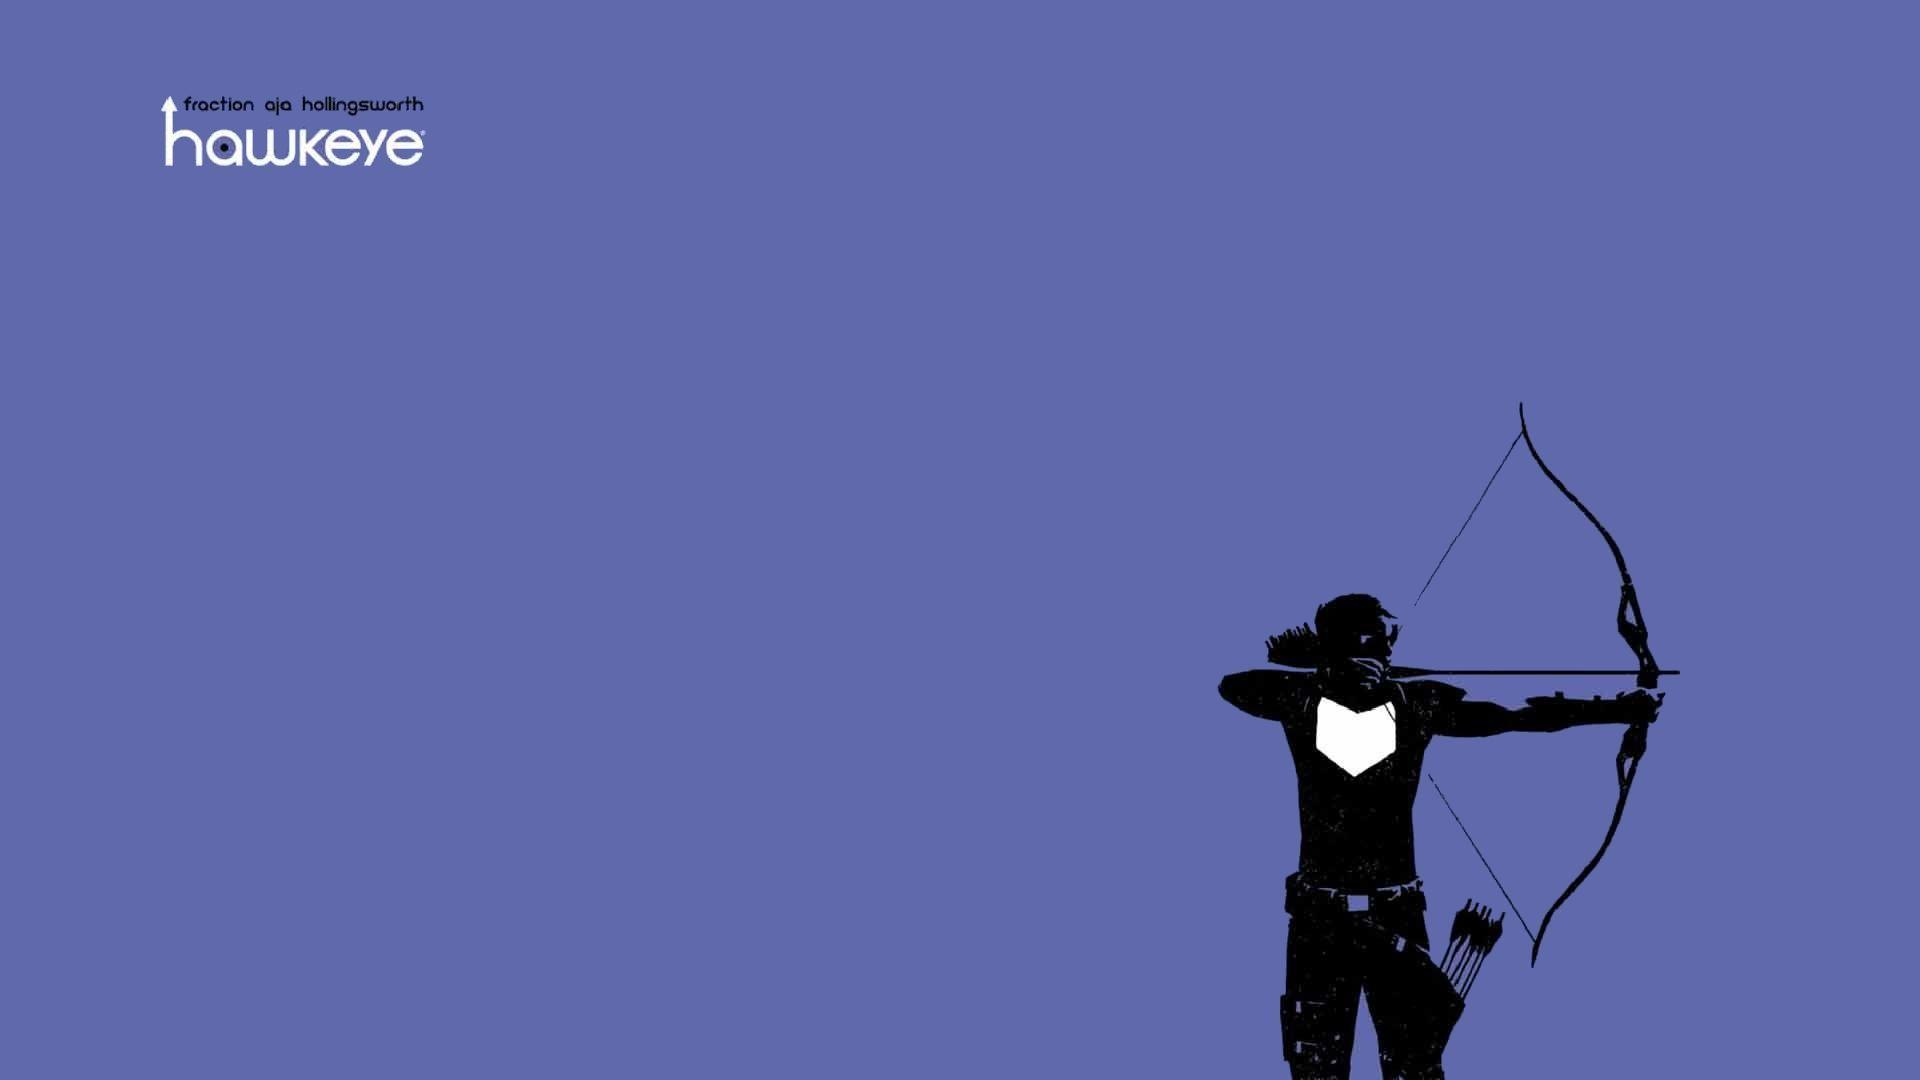 Hawkeye Computer Wallpapers, Desktop Backgrounds 1920x1080 Id: 473000